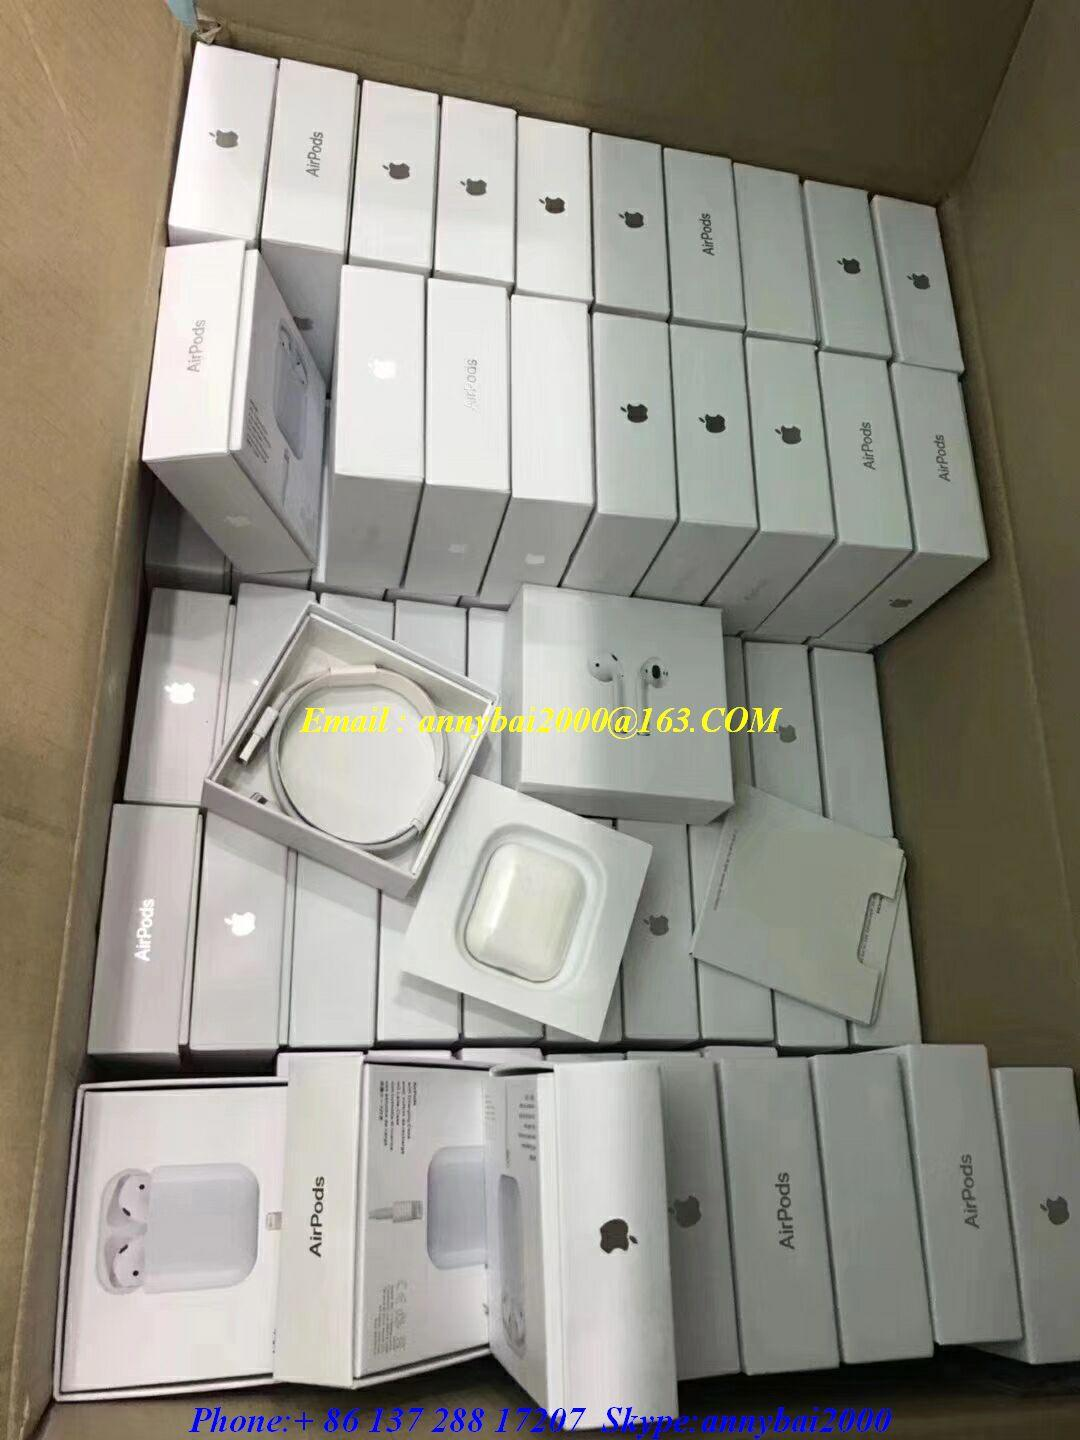 Hot selings airpods earbud with high quality for wholesale 1